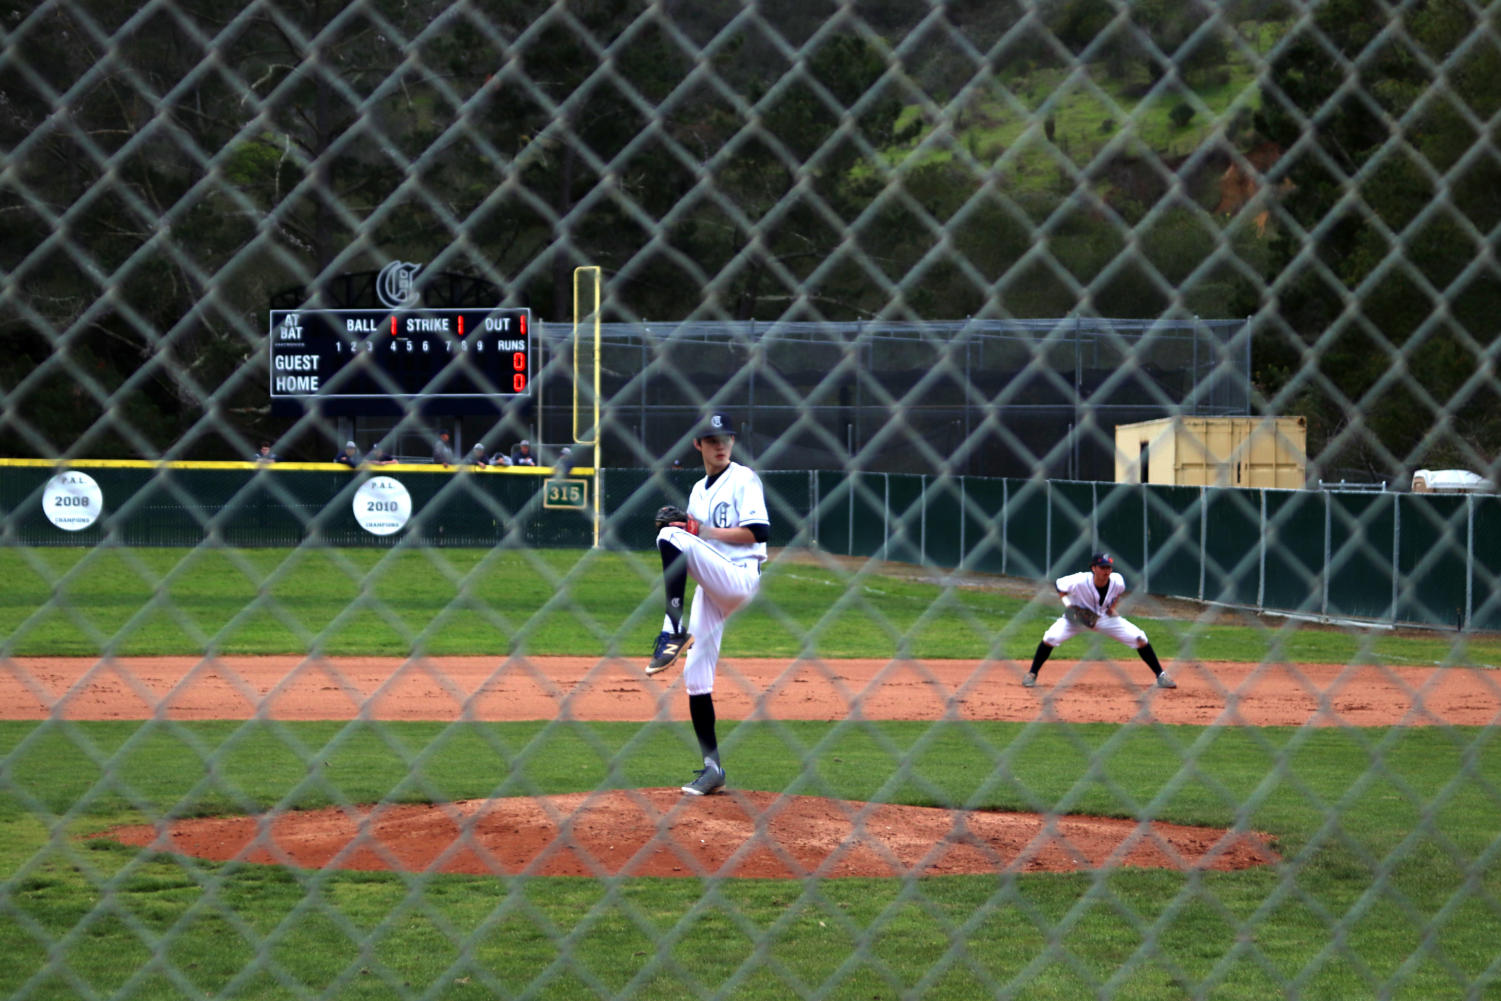 Starting pitcher Tai Takahashi, a sophomore, winds up to throw a pitch to the batter.